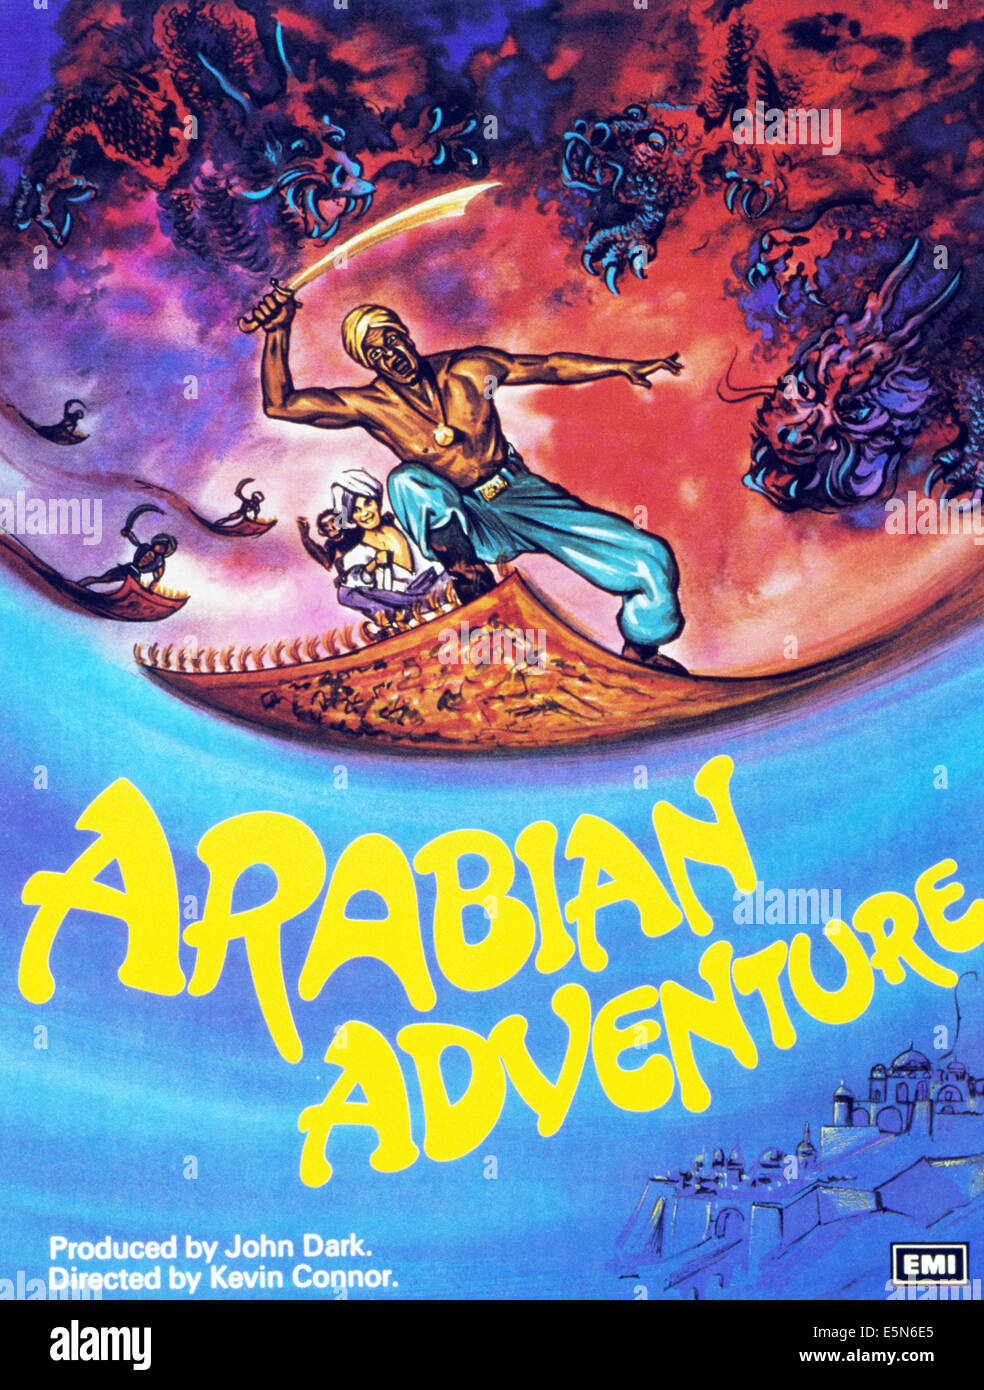 ARABIAN ADVENTURE, 1979, © EMI Filme/Courtesy Everett Collection Stockbild